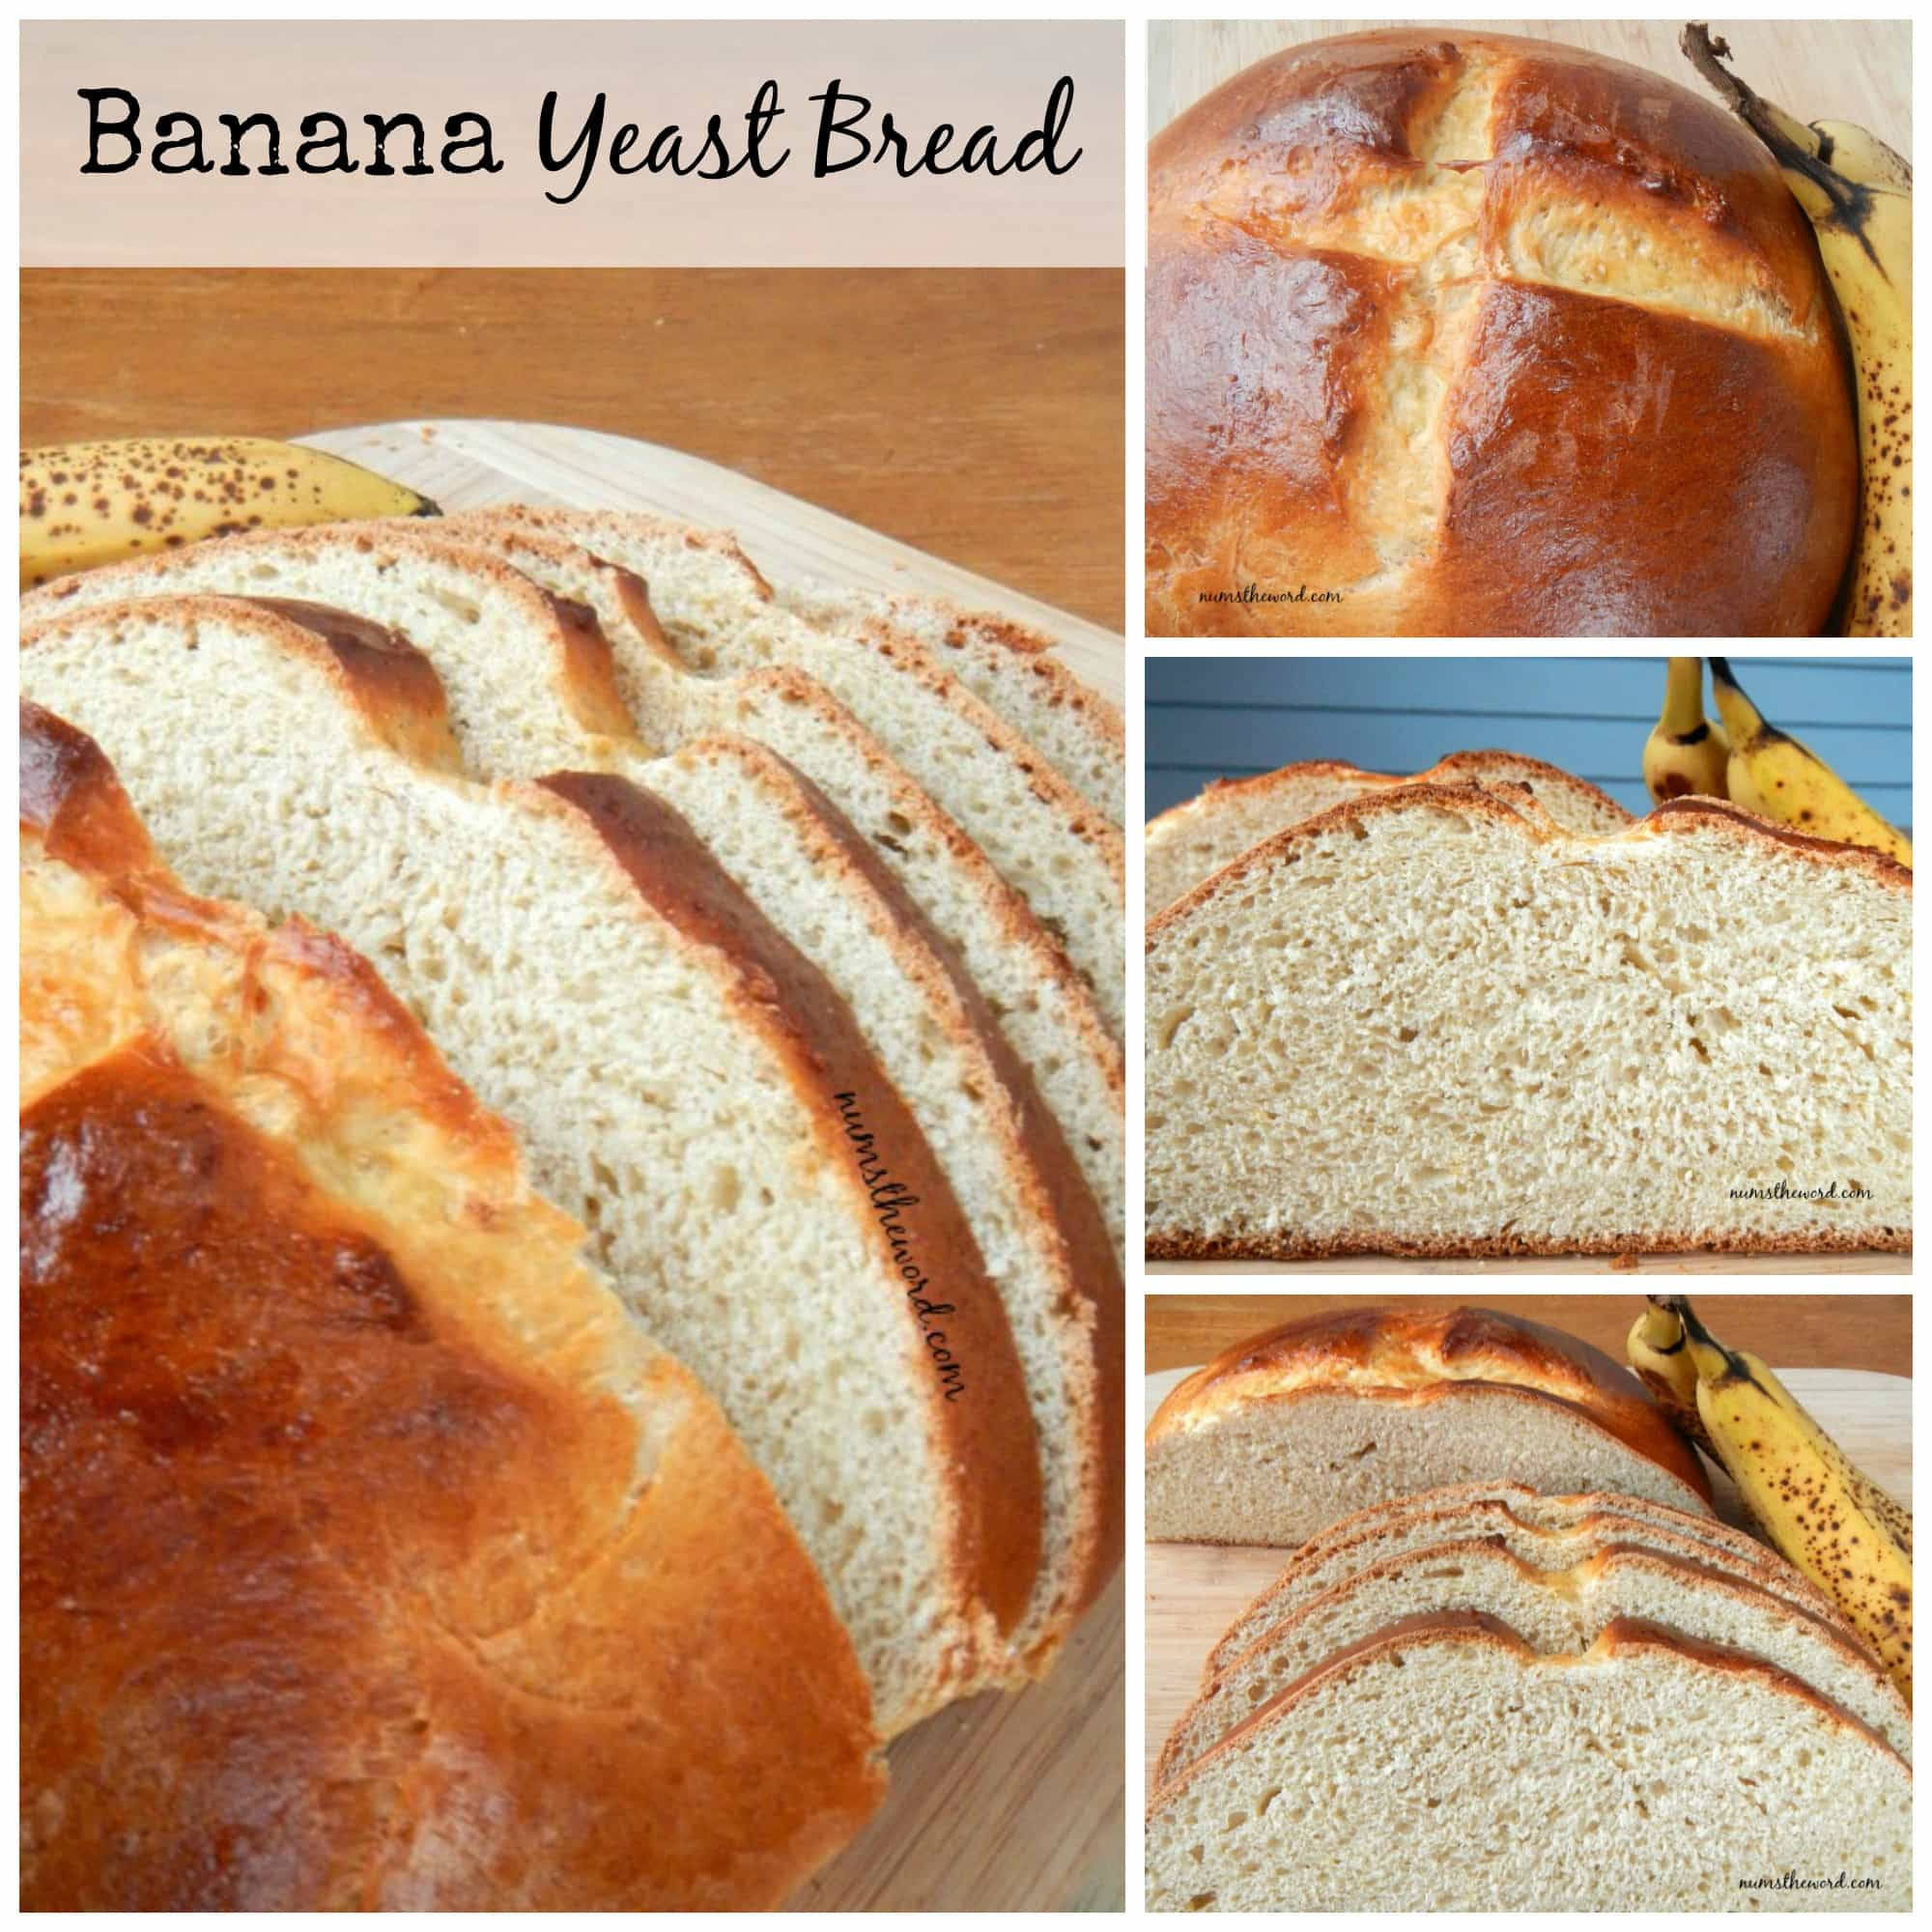 Banana Yeast Bread